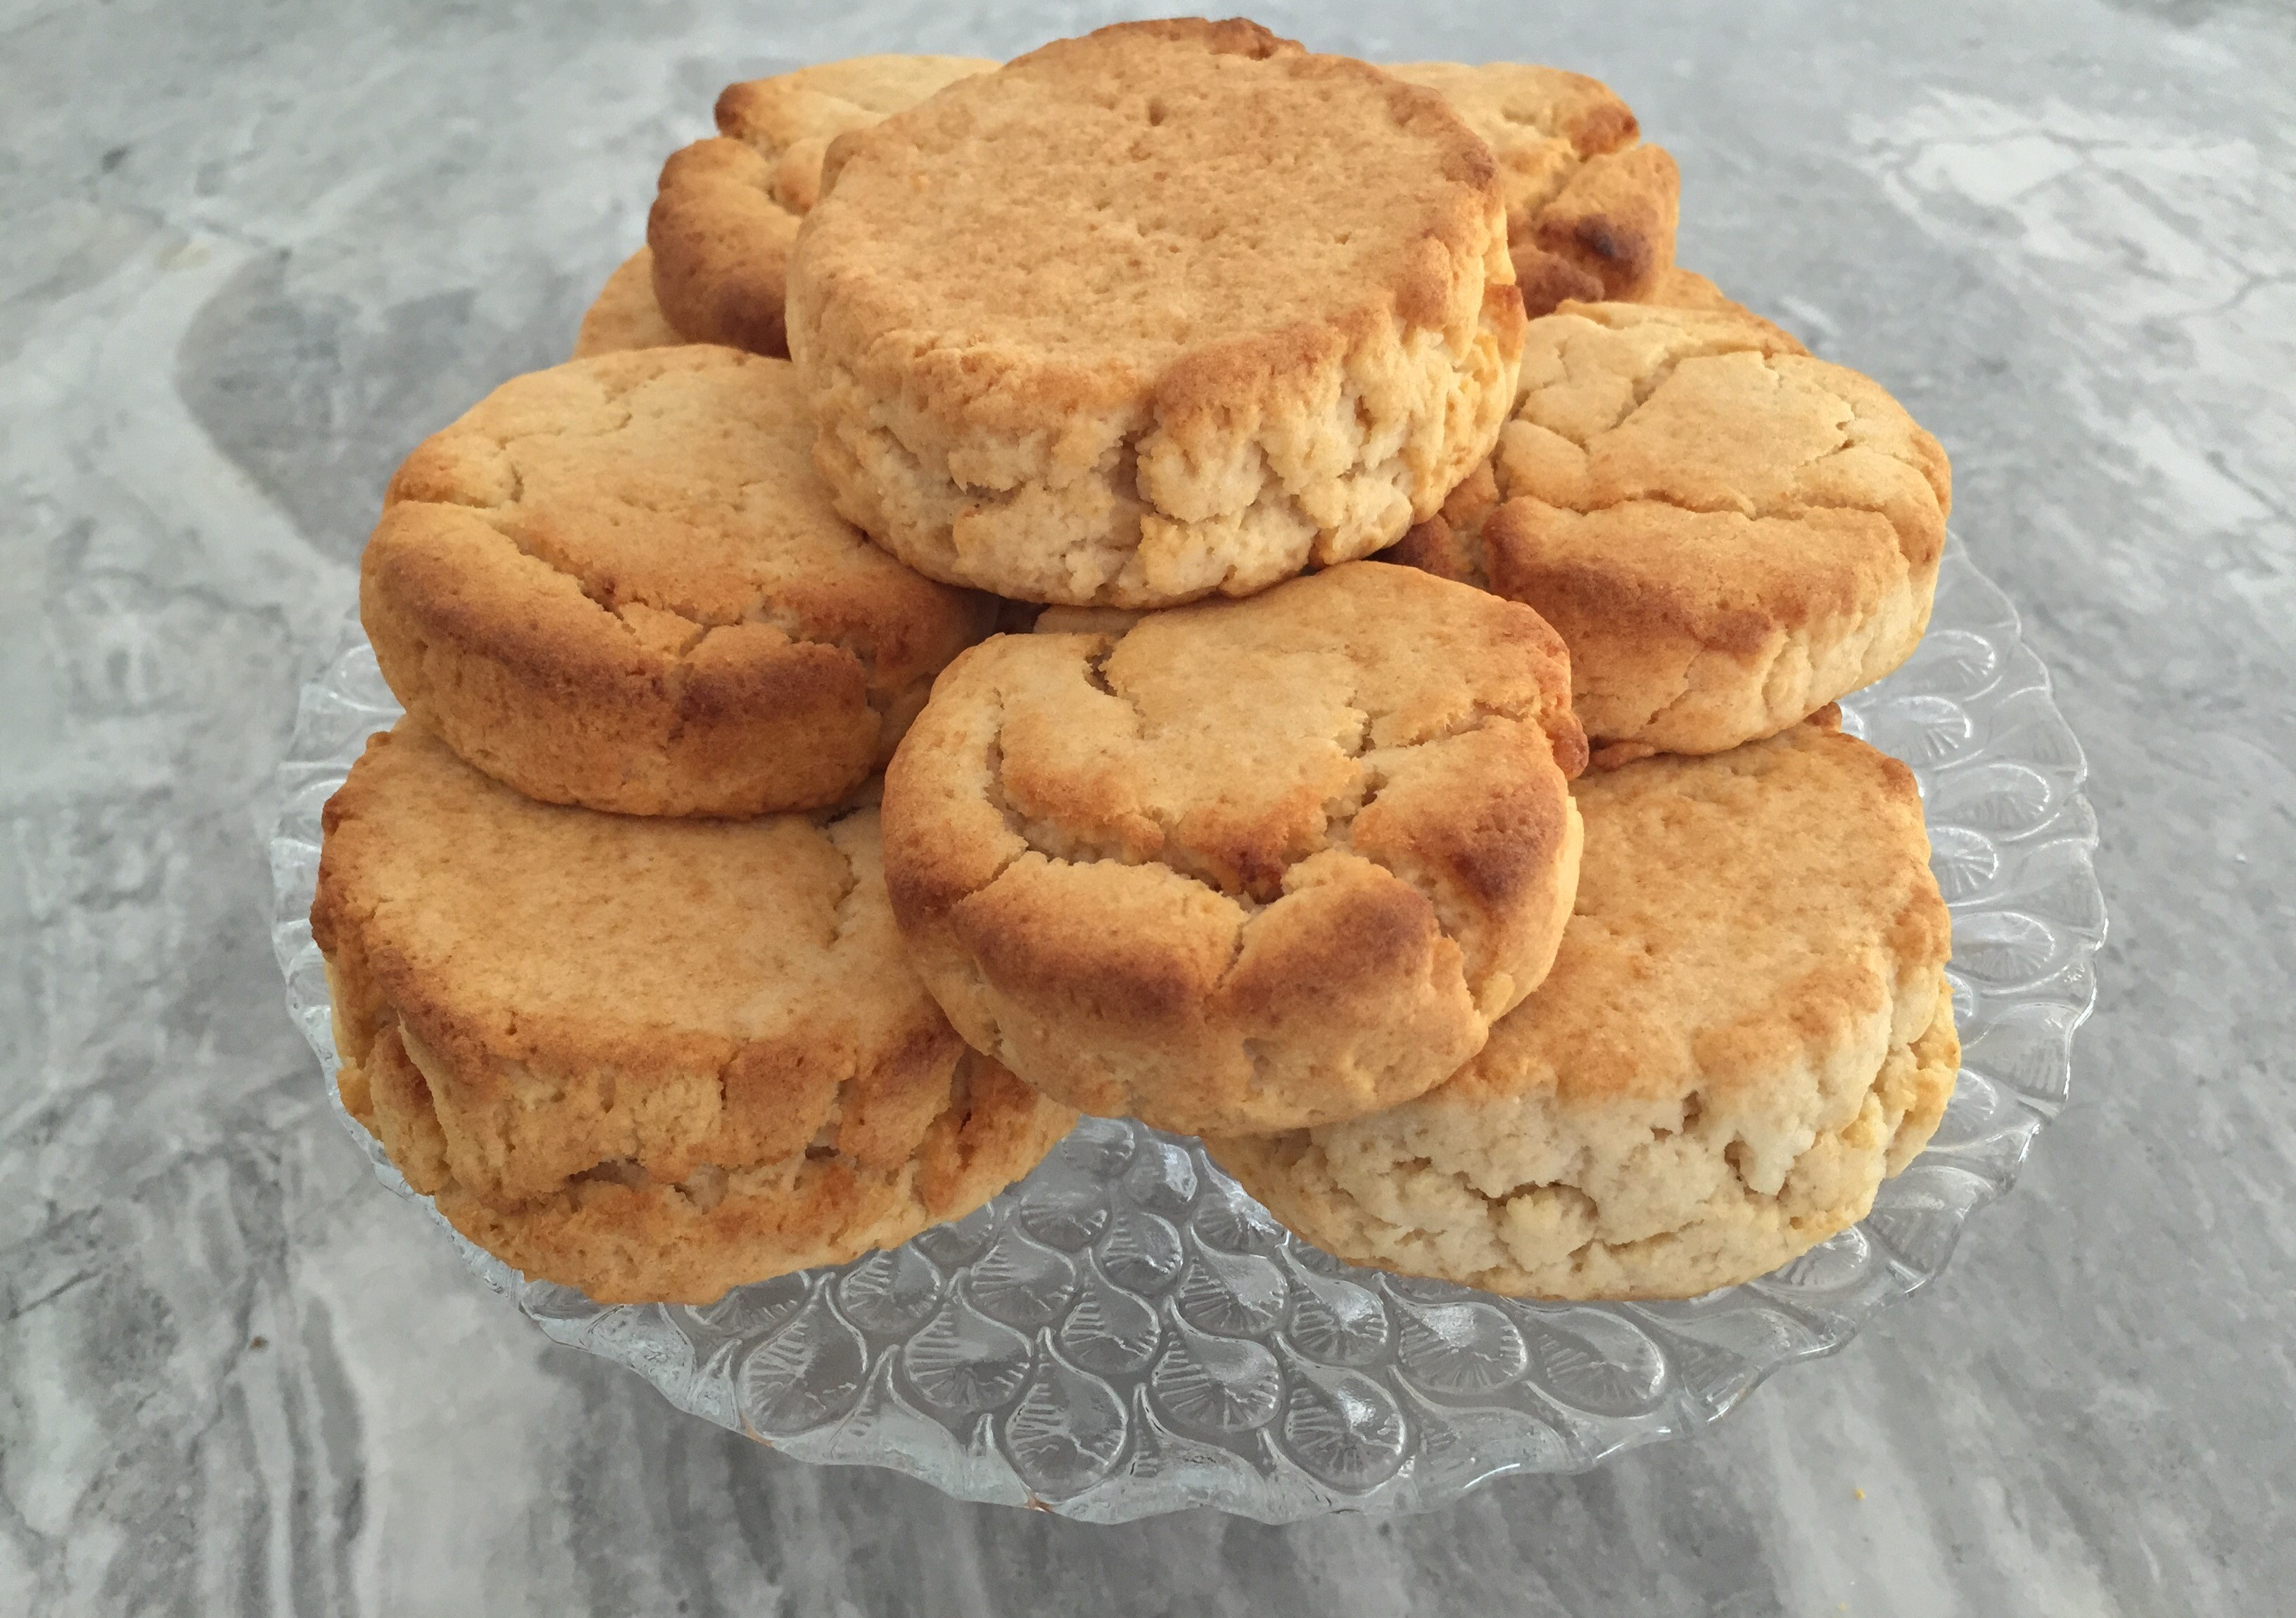 Gluten-Free Baking Tips and Tricks 3